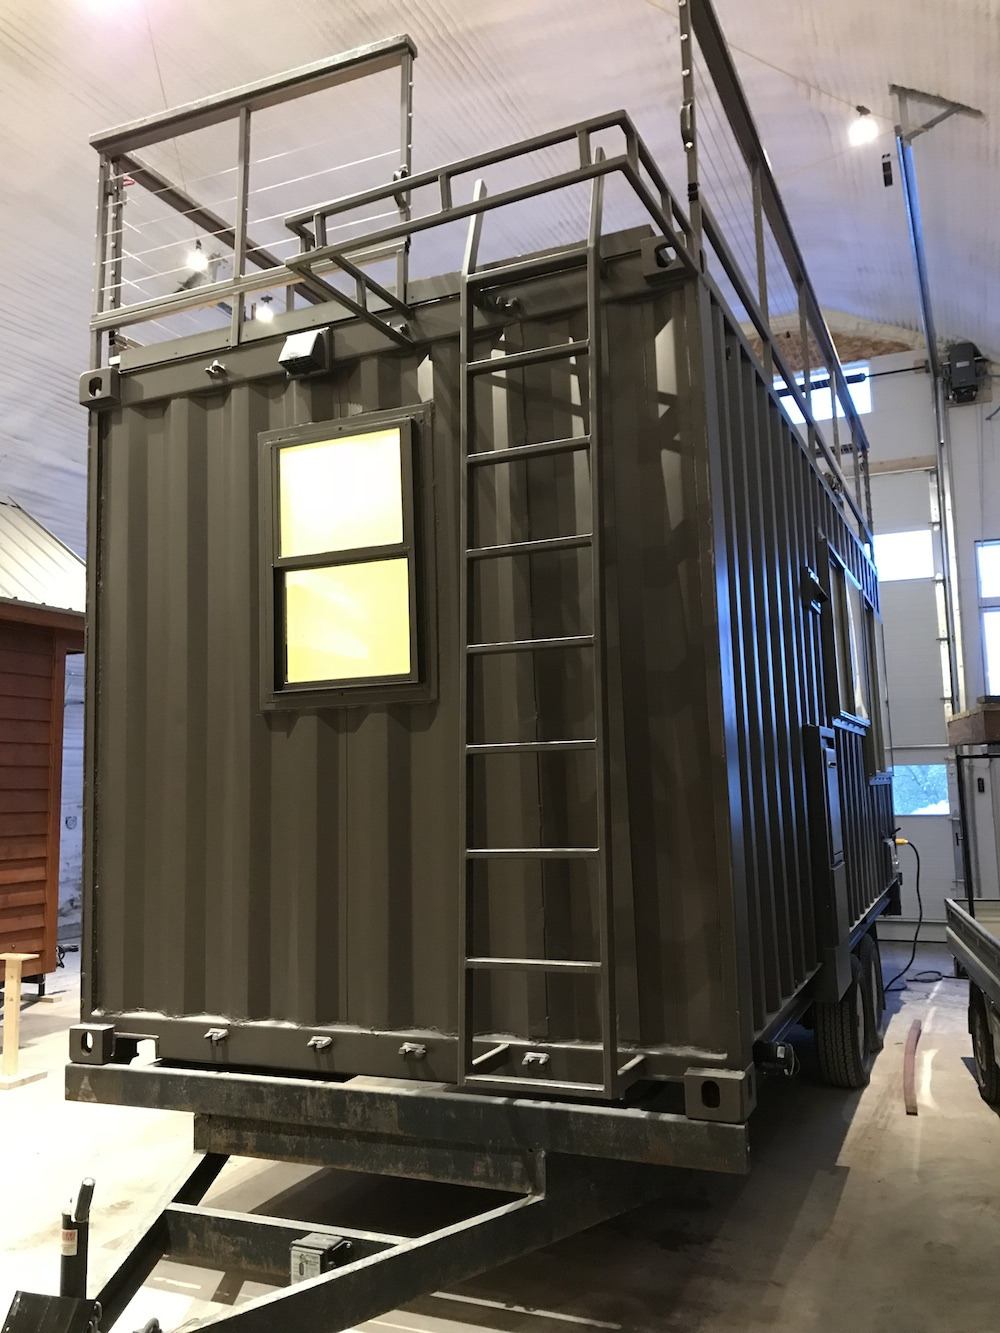 tiny house meets shipping container in escape s vista c curbed. Black Bedroom Furniture Sets. Home Design Ideas